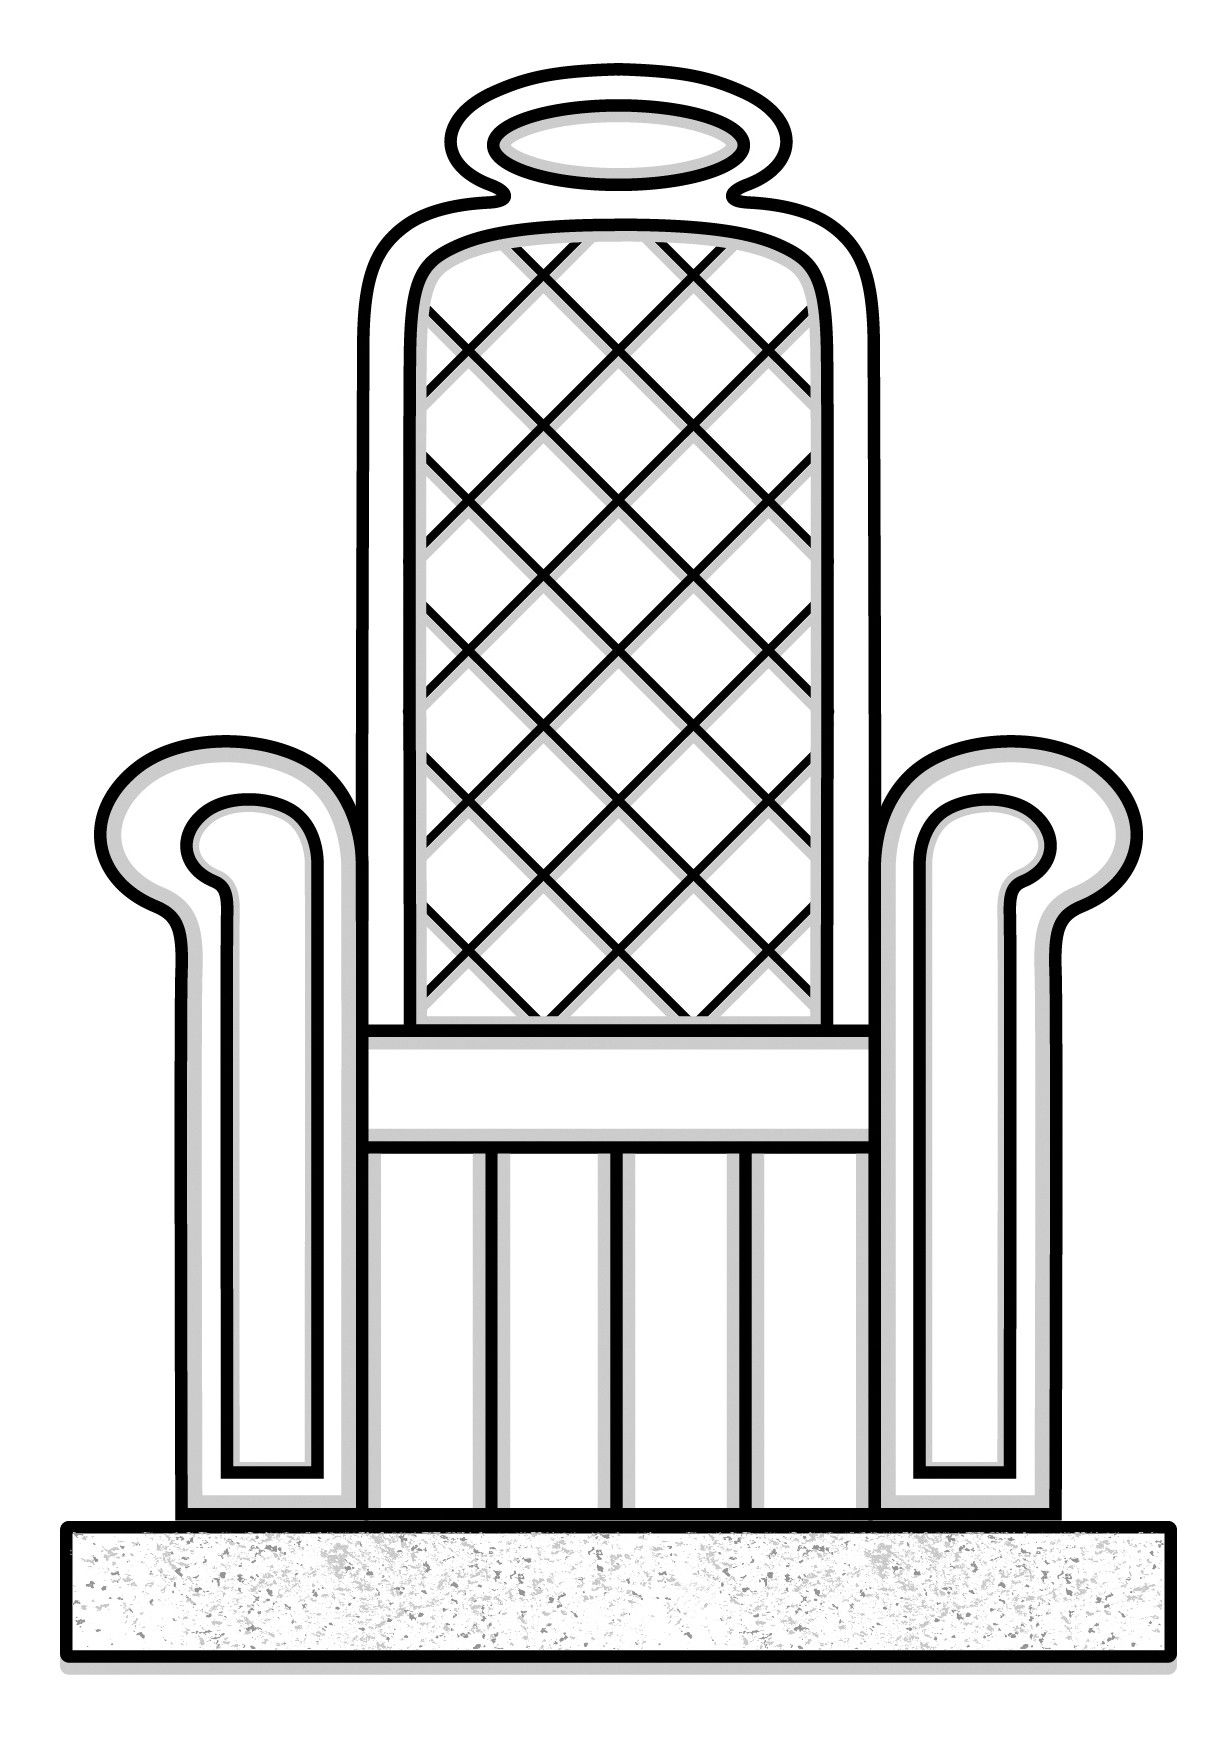 A simple line drawing of a throne.